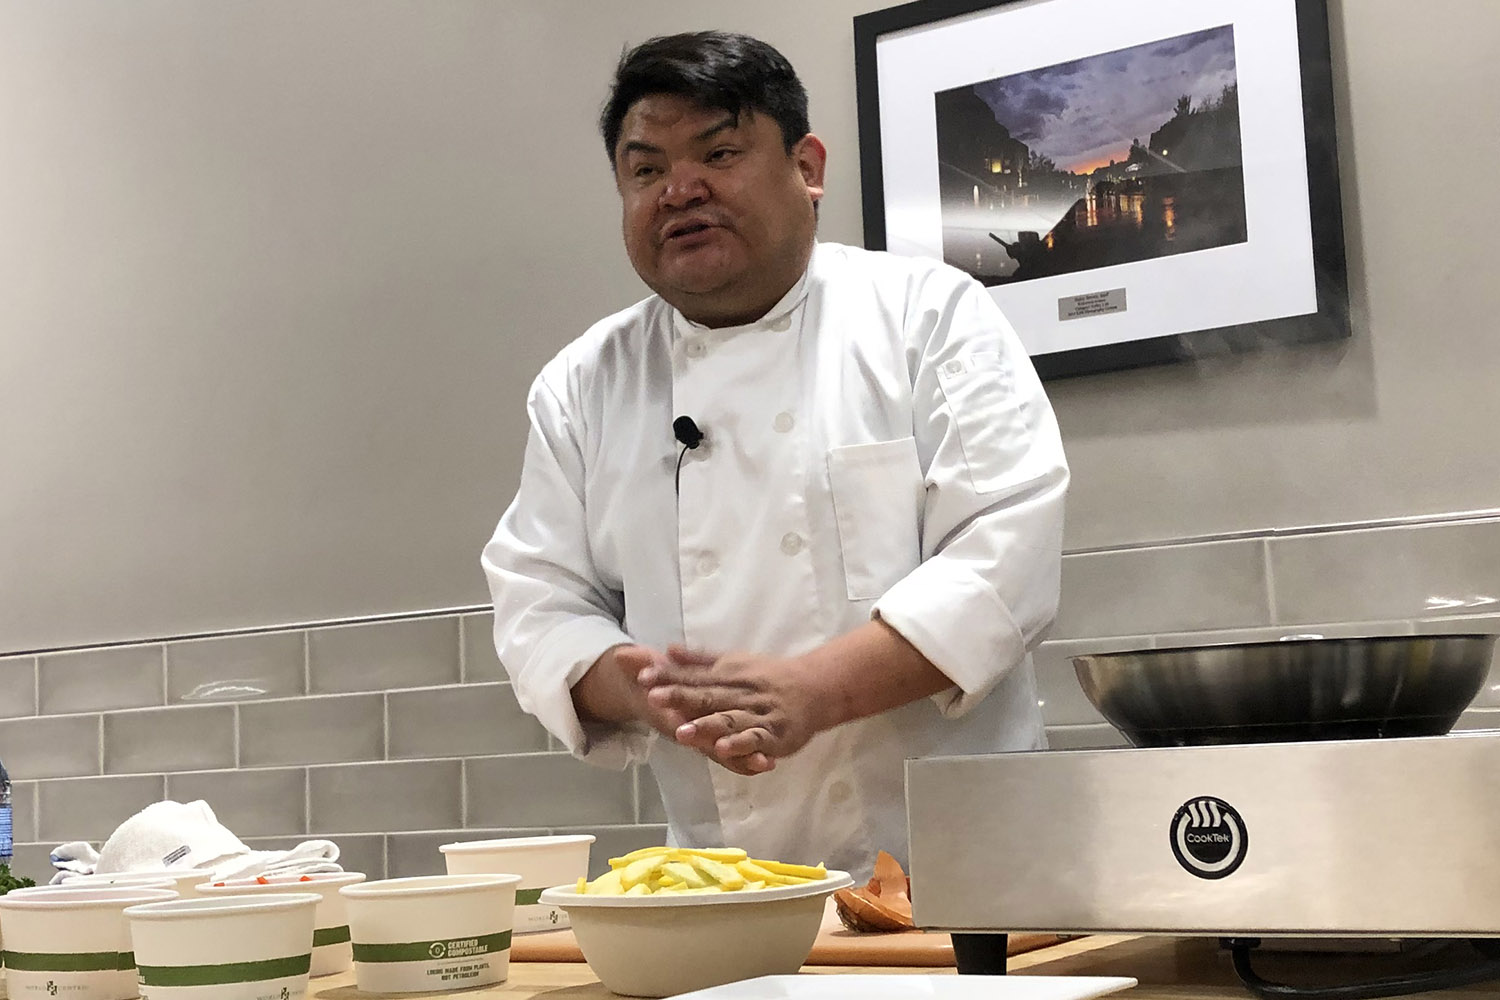 Chef Freddie Bitsoie standing in white chef's jacket at a table with bowls of food and an induction burner.